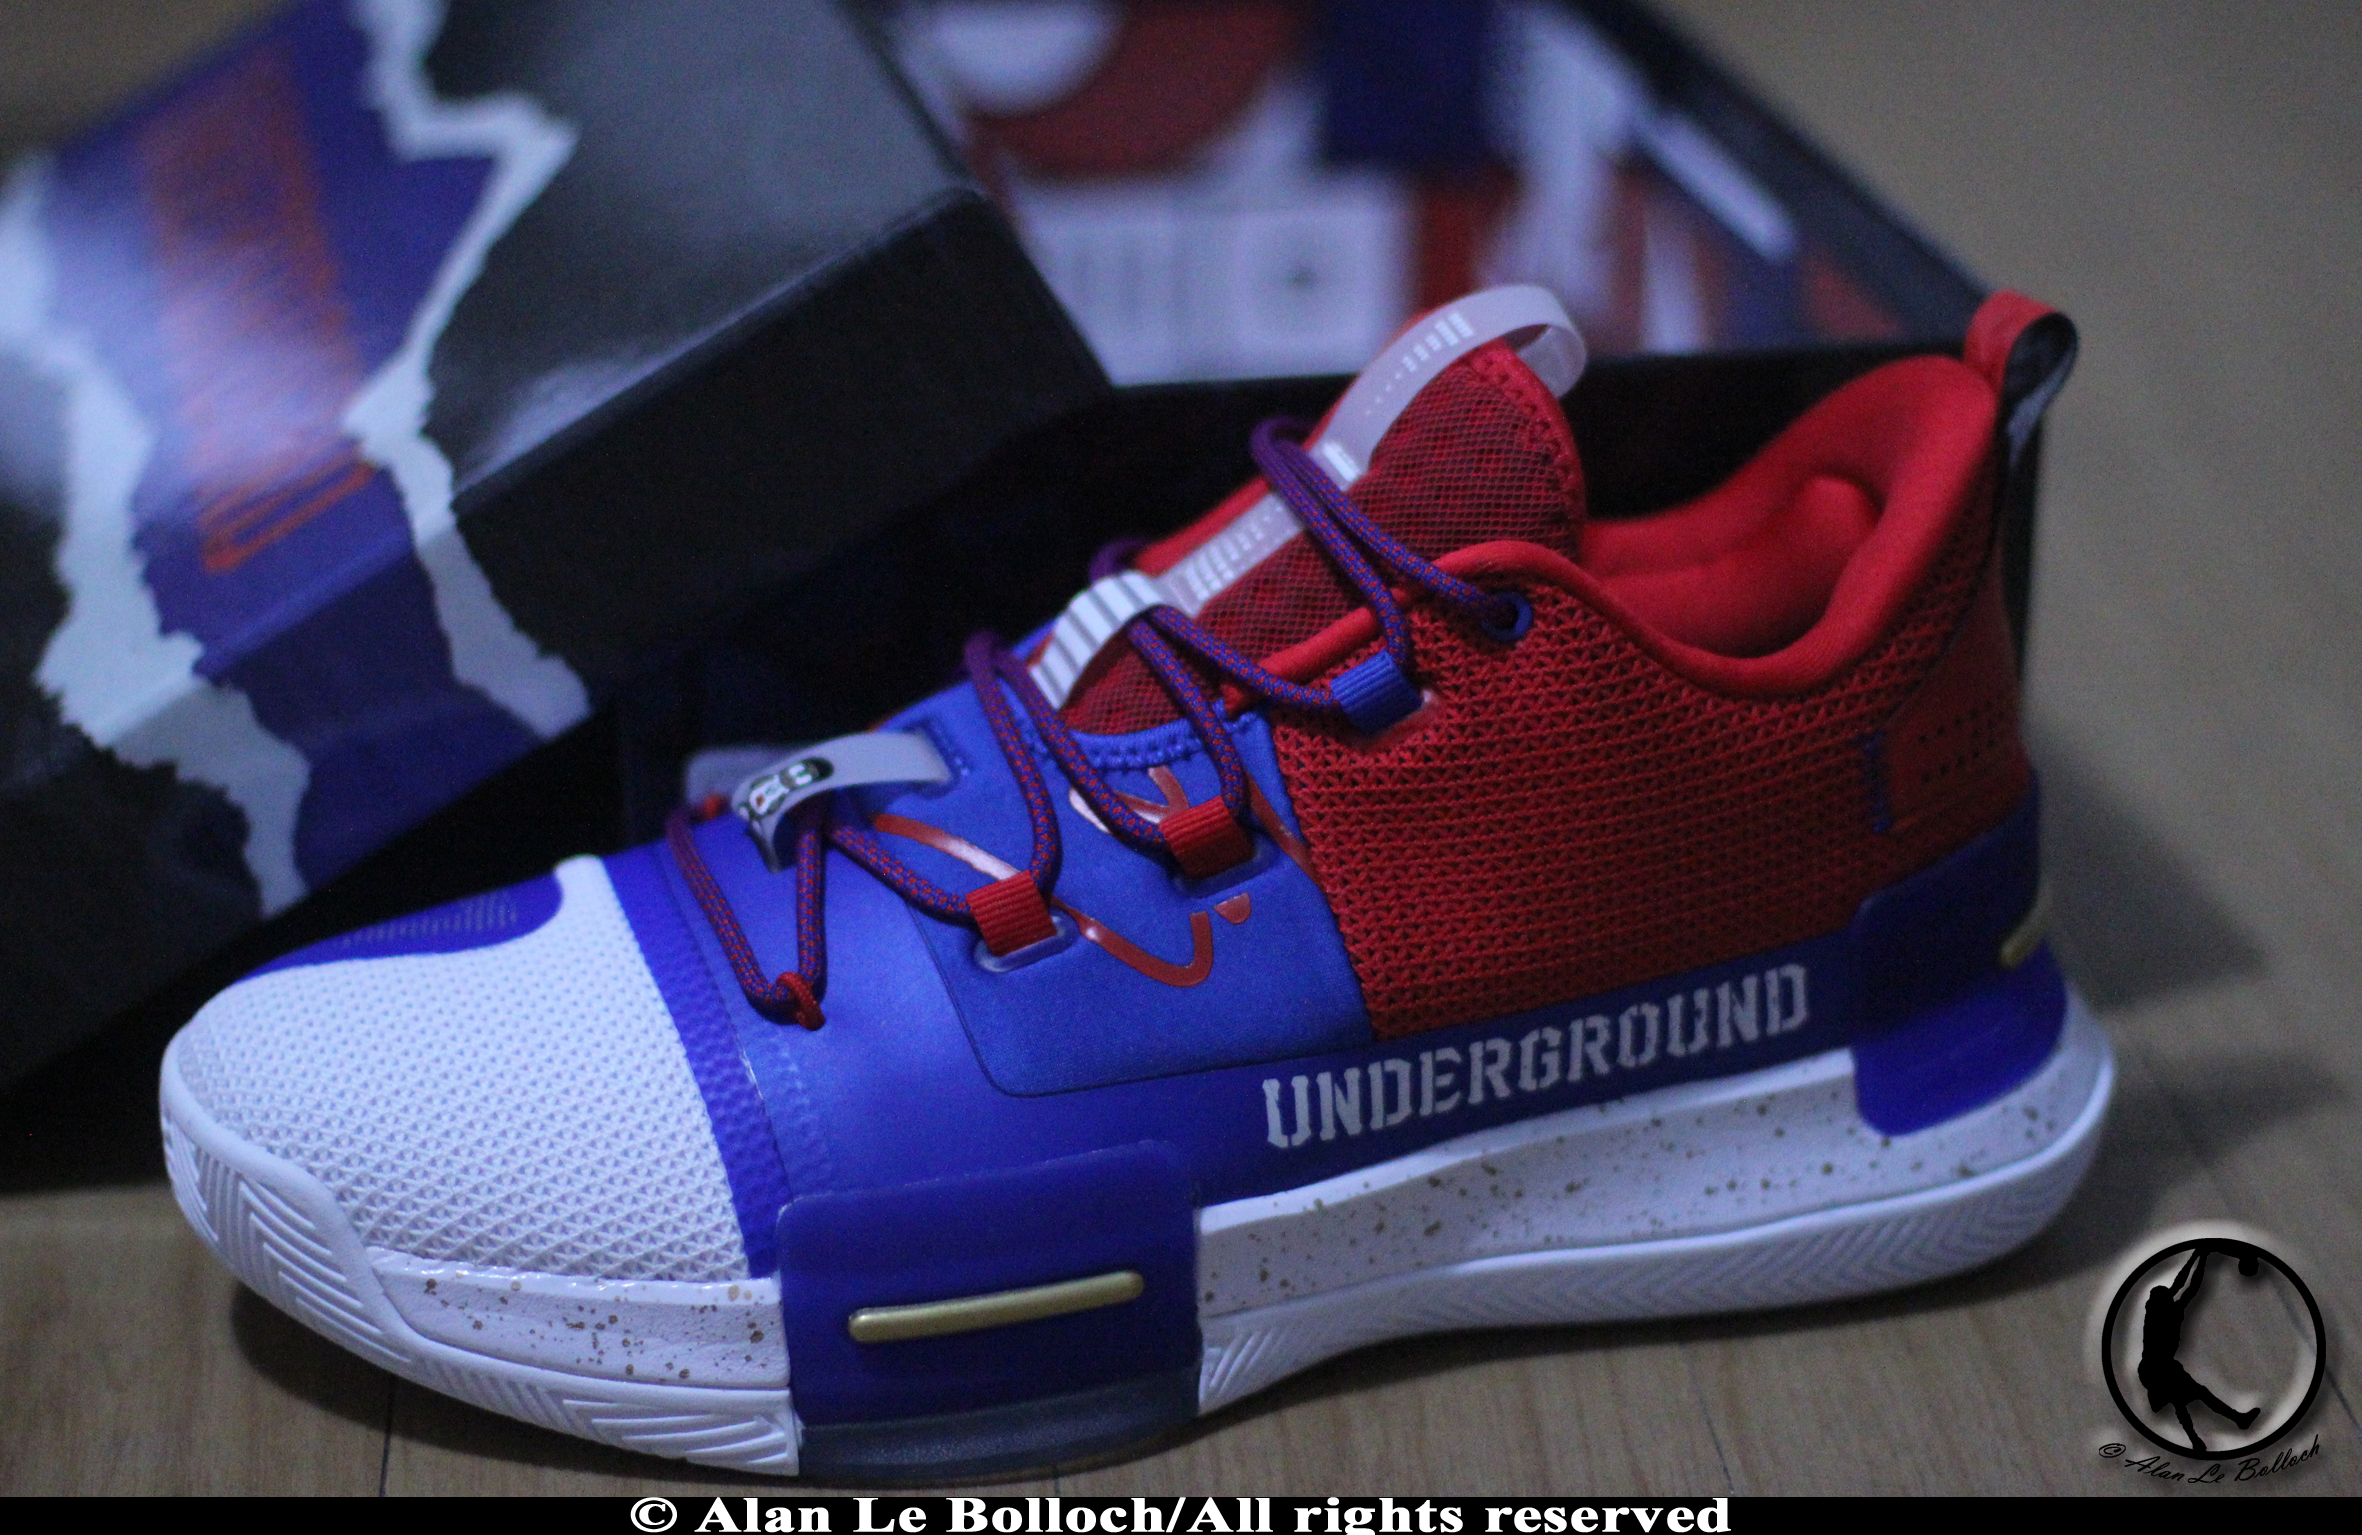 chaussures Peak - Lou Williams (3)